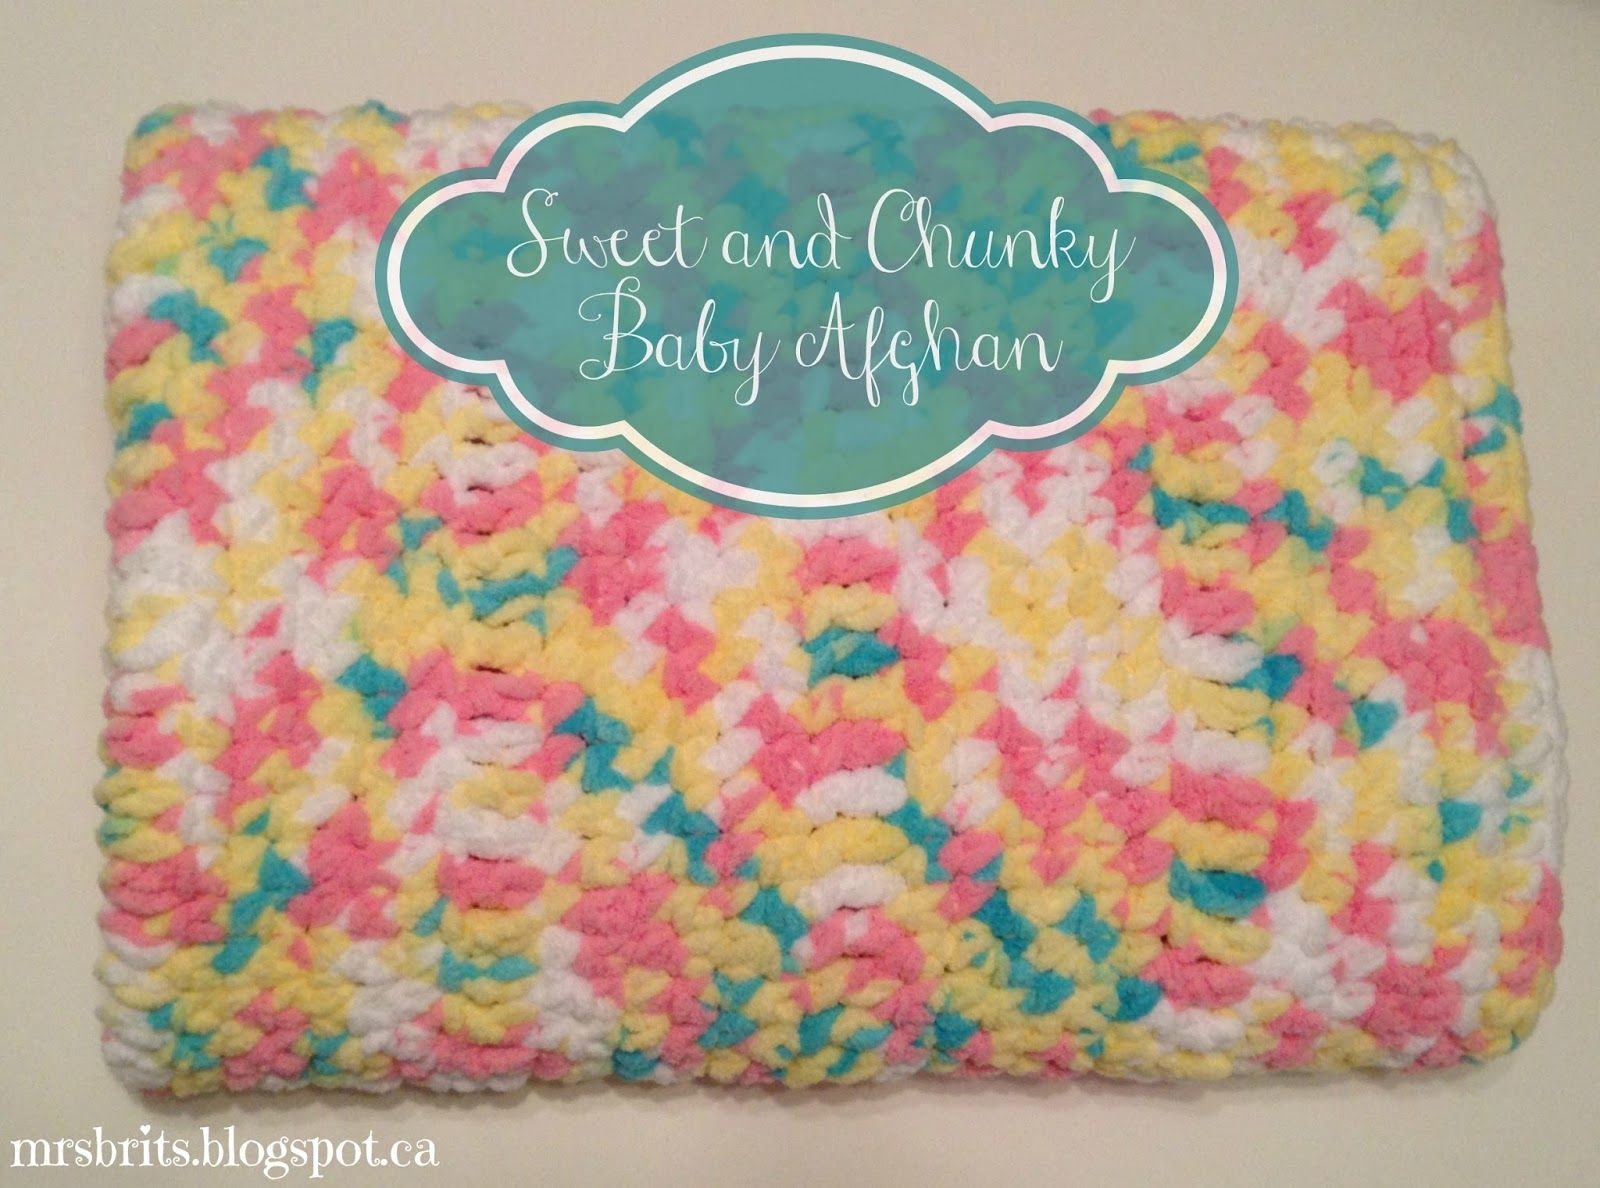 Mrsbrits sweet and chunky baby afghan crochet pattern crazy mrsbrits sweet and chunky baby afghan crochet pattern bankloansurffo Image collections